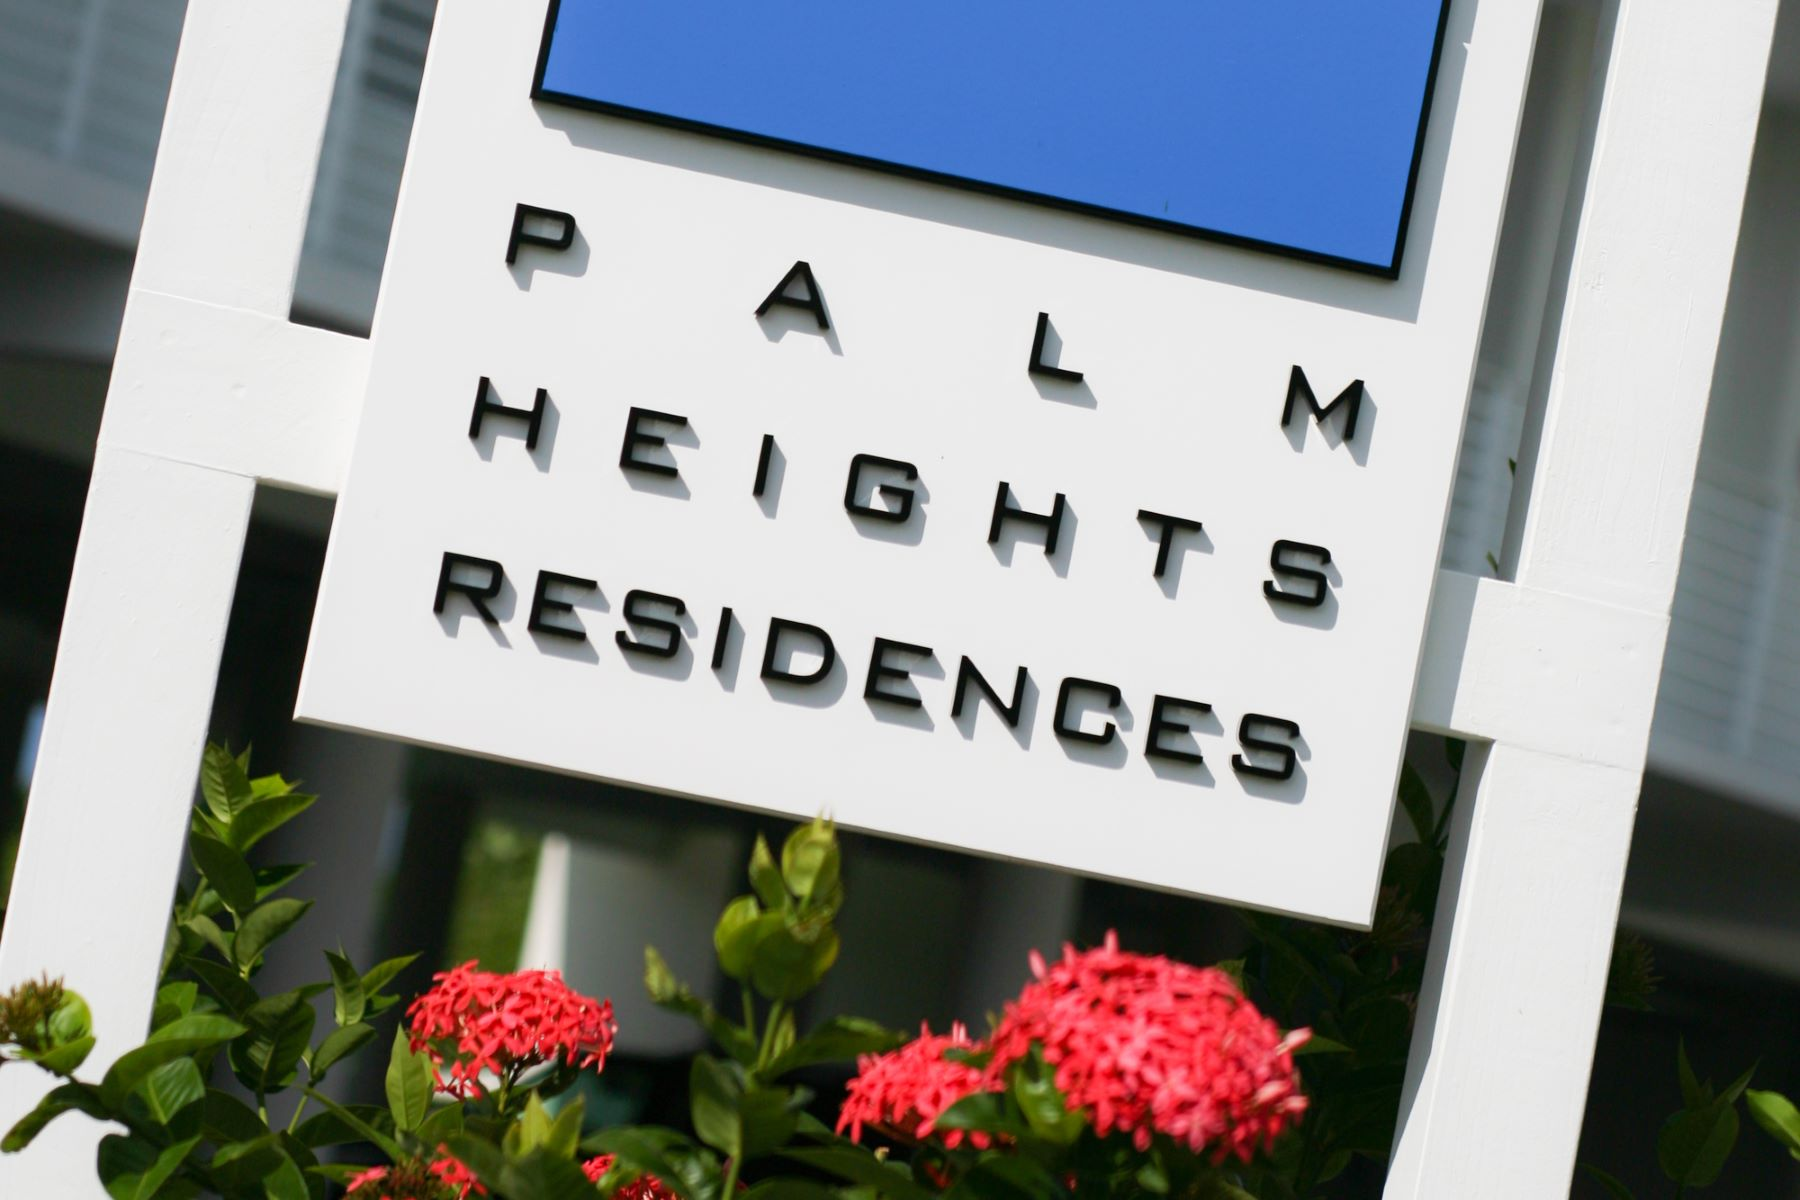 Additional photo for property listing at Palm Heights Residences 斯纳昂港, 大开曼岛 开曼群岛